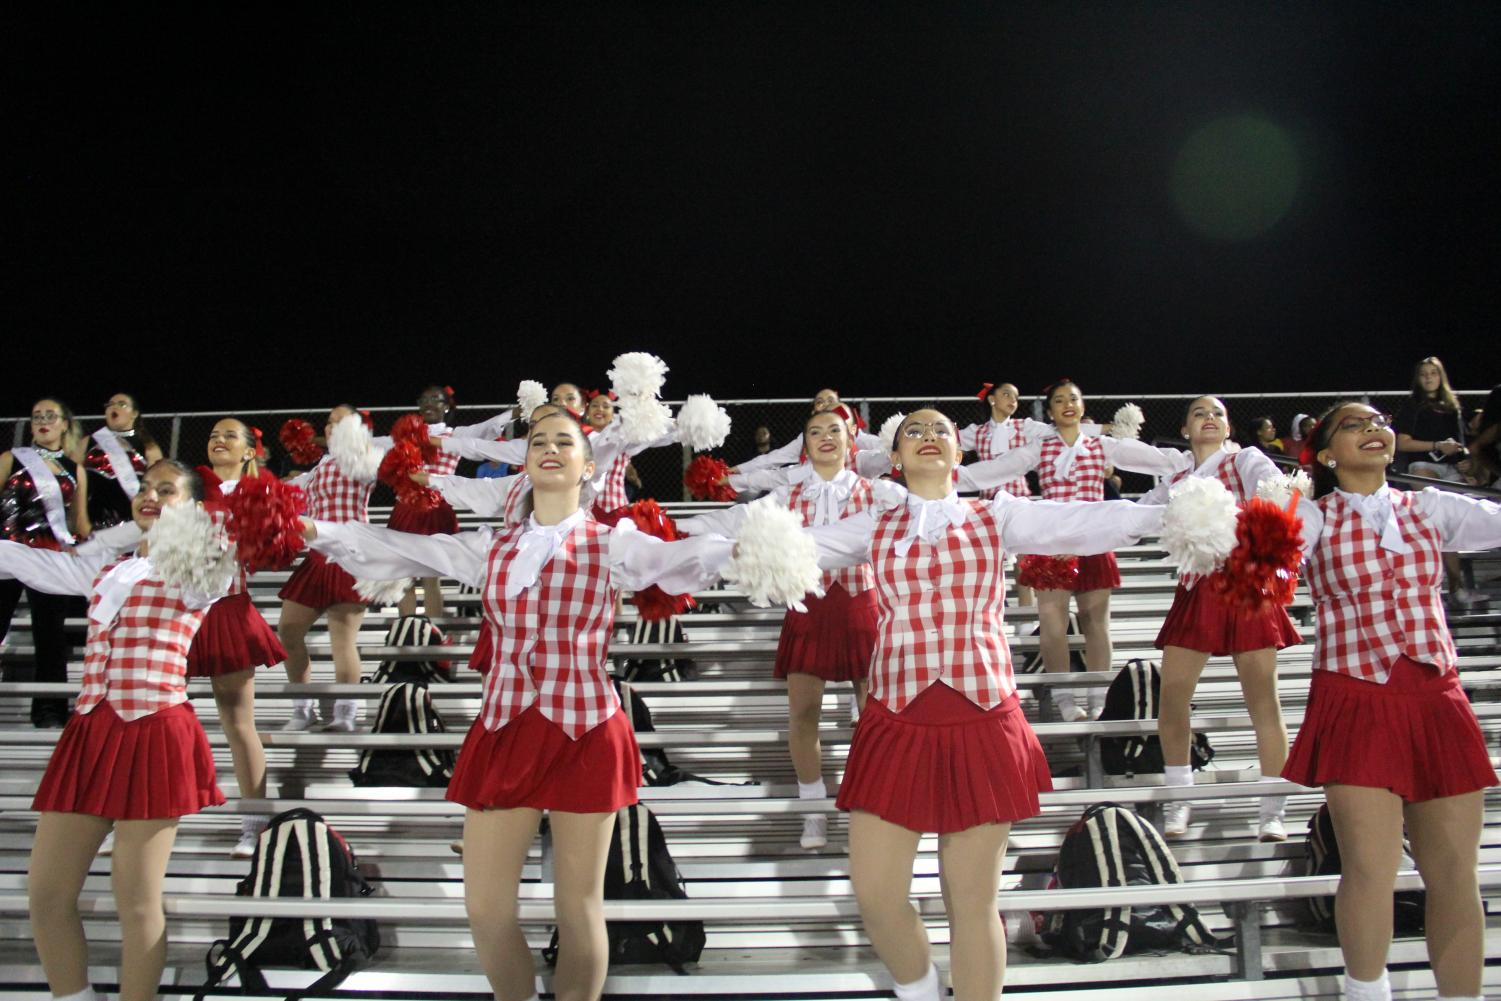 Gablettes+cheer+on+the+Cavaliers+as+they+take+on+Columbus.